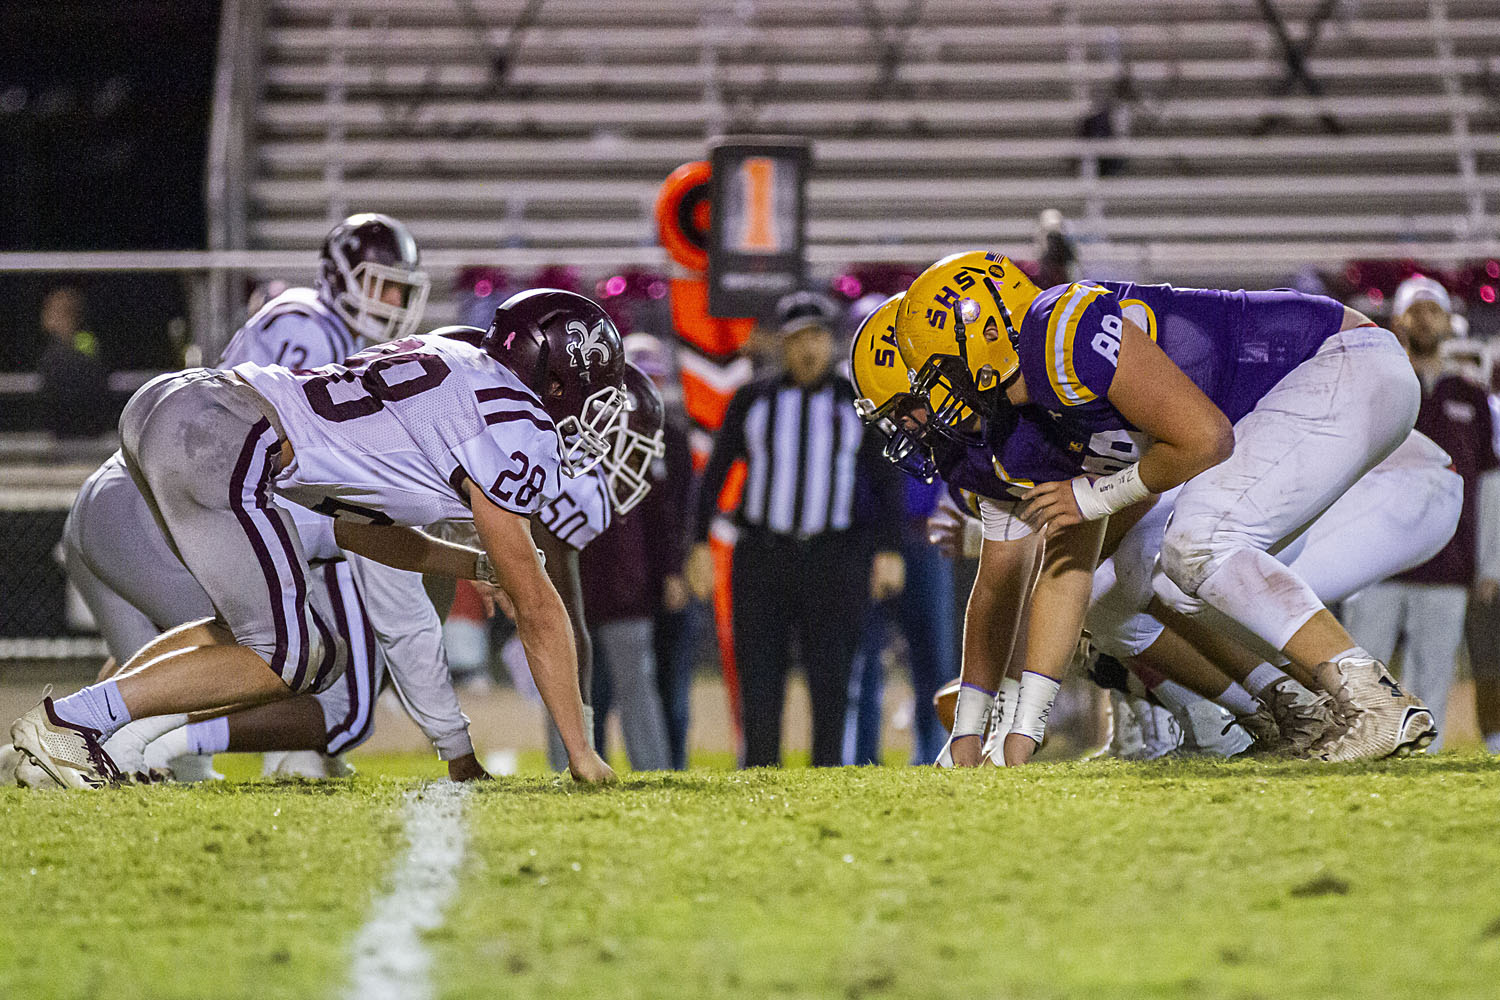 Center Point stumbles against Central Clay County with region title on the line